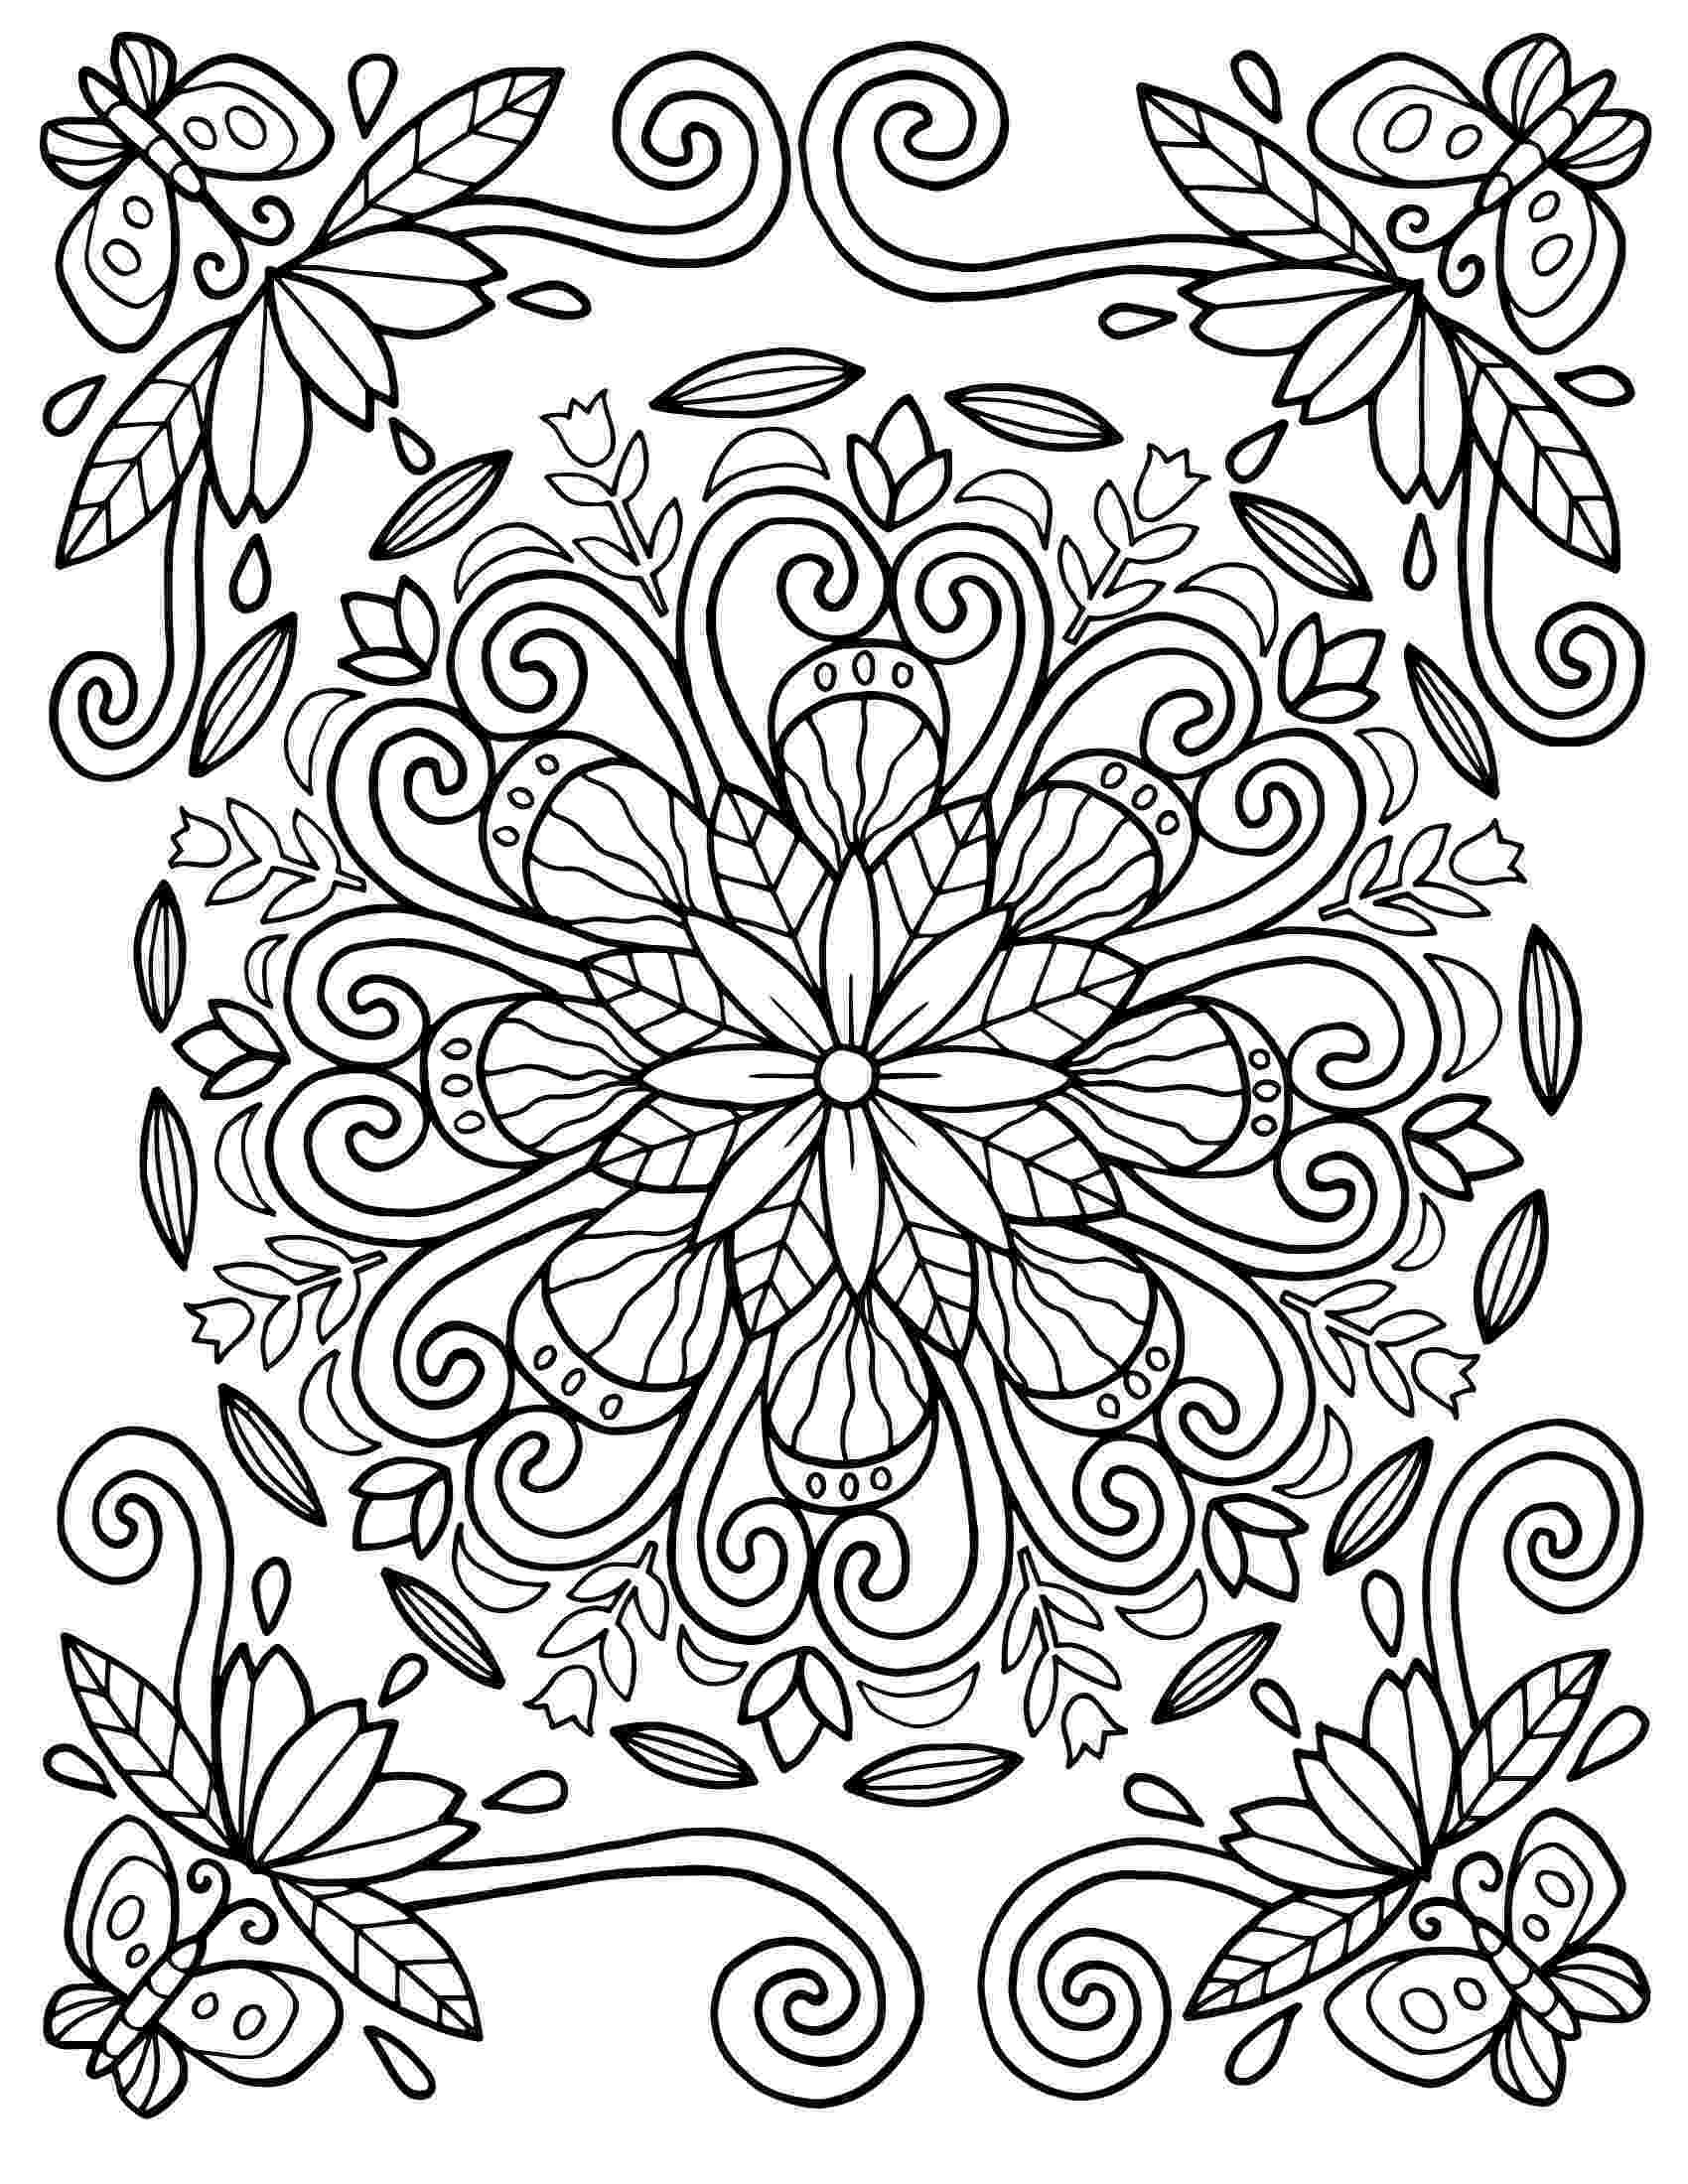 pattern coloring pages for adults pattern animal coloring pages download and print for free adults for pattern pages coloring